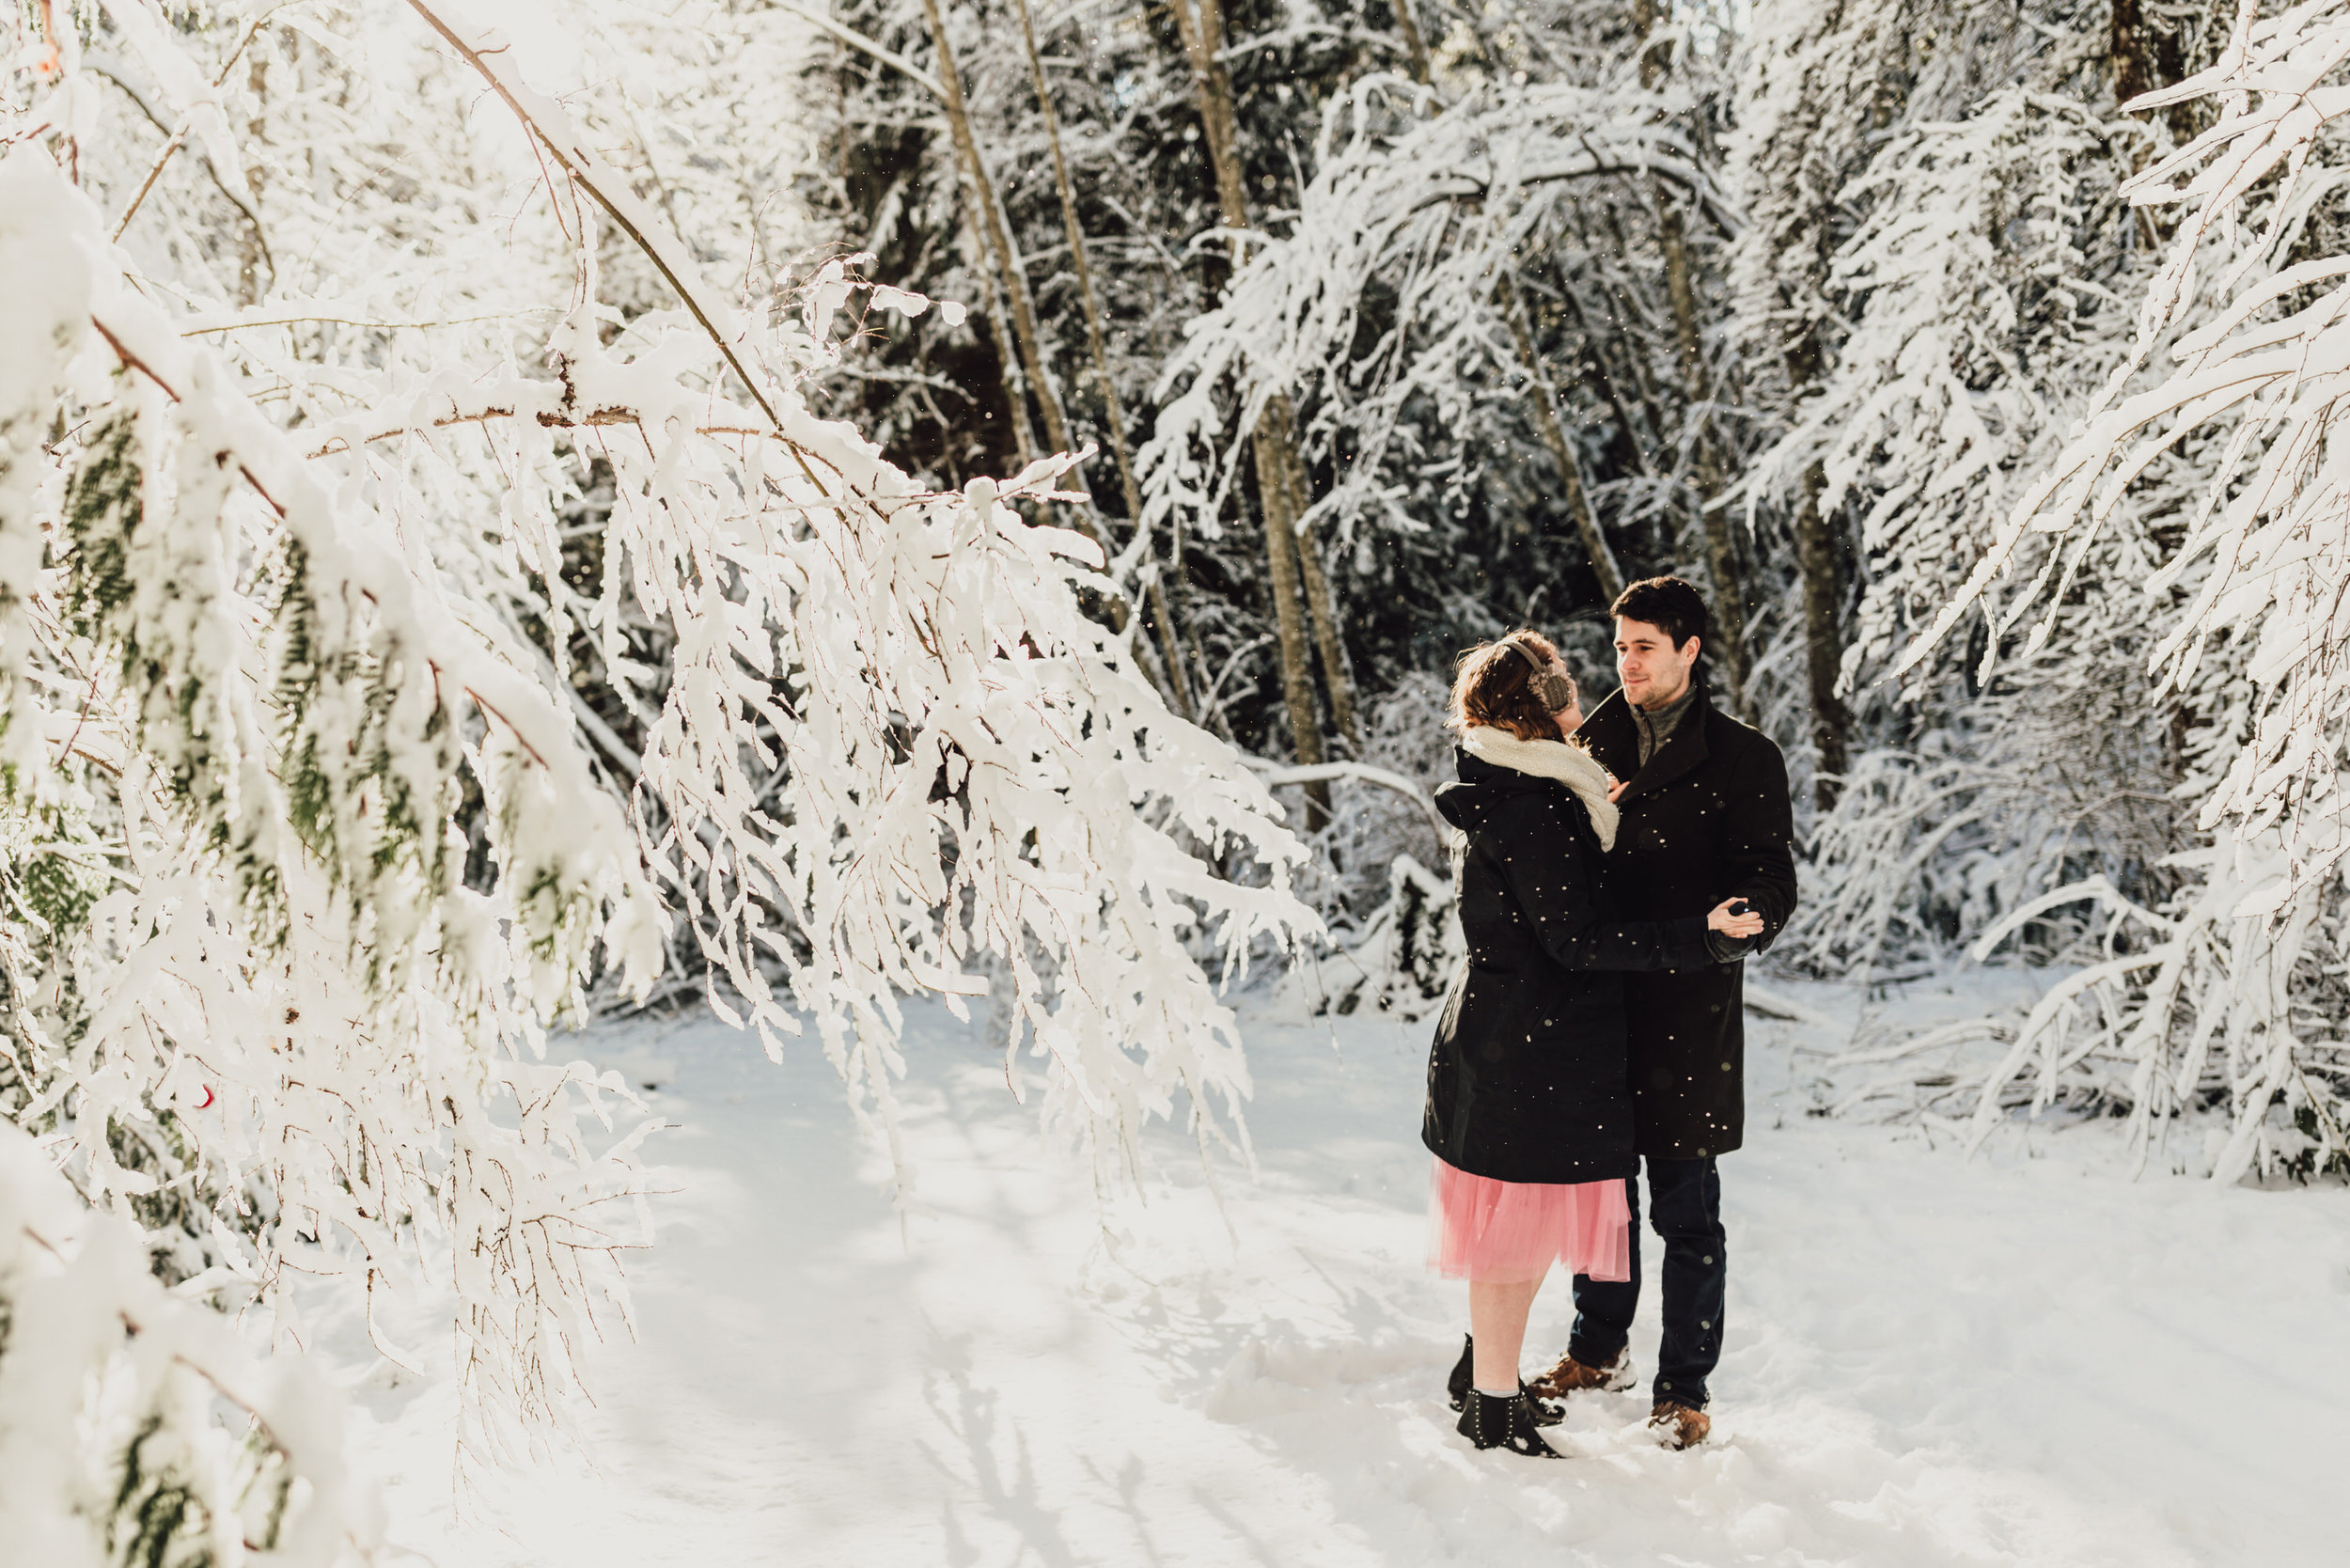 Snowy Engagement Photos - Gibsons Engagement Photos - Sunshine Coast Engagement Photos - Vancouver Wedding Photographer and Videographer - Jennifer Picard Photography105.JPG